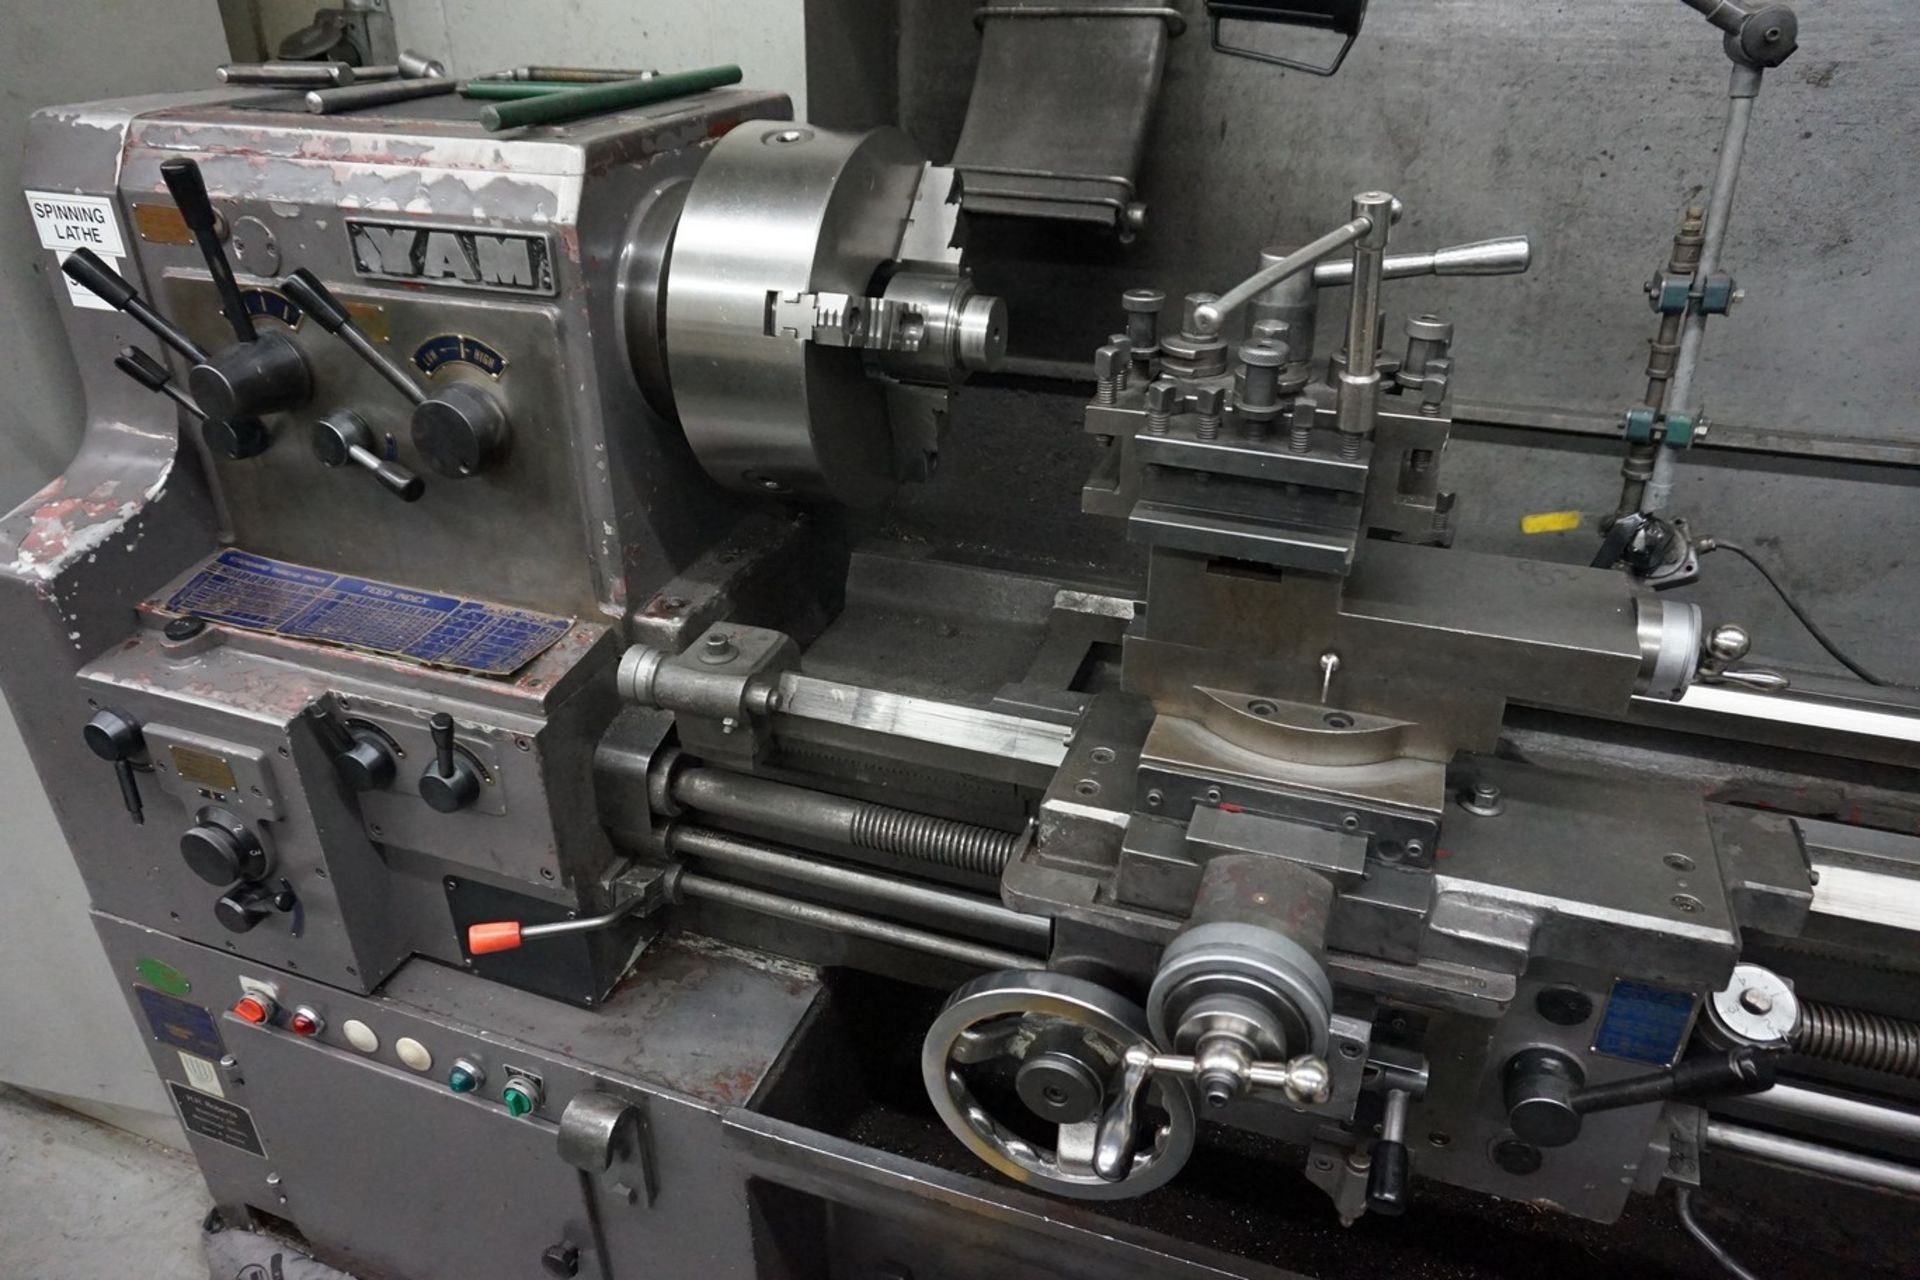 Yam Model 1500H Horizontal Lathe with Quick Change Tool Post, Spindle Bore - Image 2 of 5